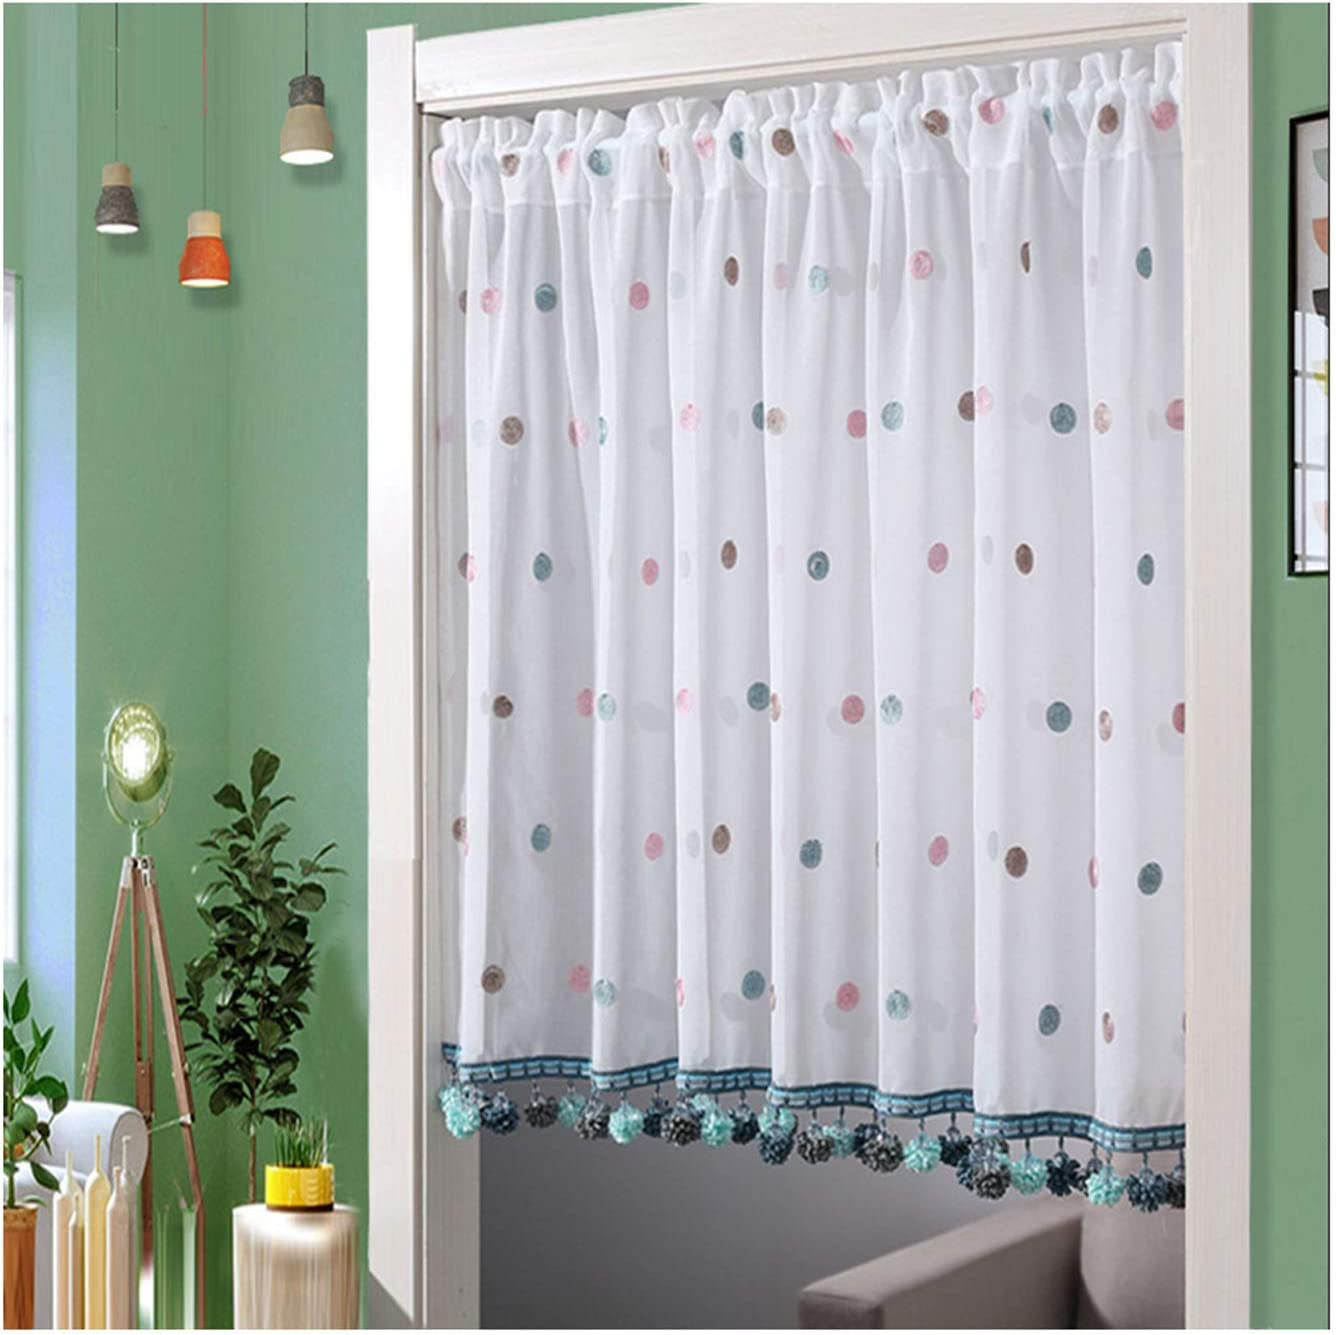 F-XW Tier Curtains Embroidered Half Sale Special Price 5 ☆ popular Treatment Window Cafe for